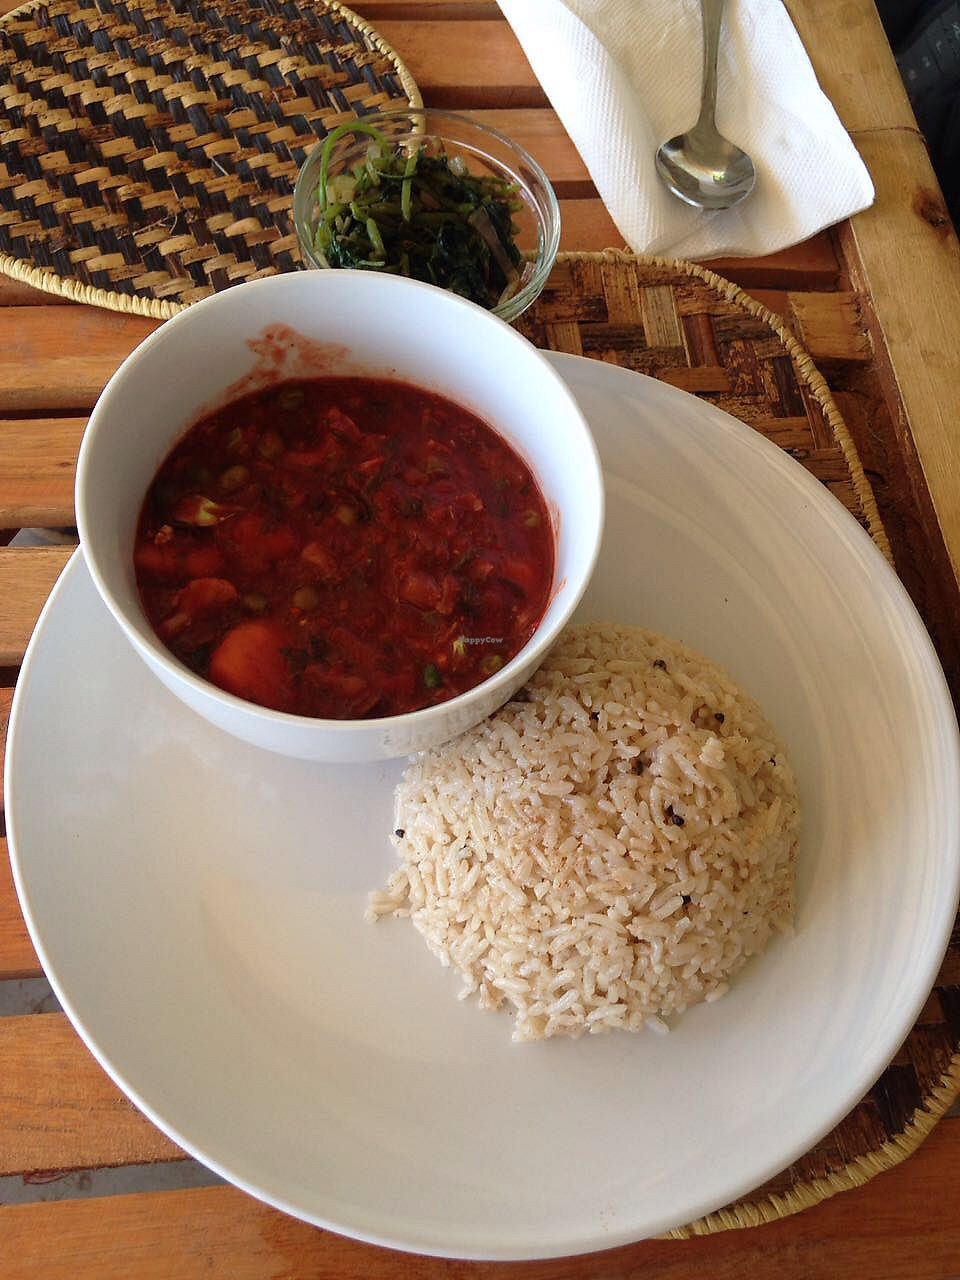 "Photo of Mlima Sayuni Art and Vegetarian Rastaurant  by <a href=""/members/profile/Alizeti"">Alizeti</a> <br/>Dish of the day, spiced brown rice, with a stew of beetroot, breadfruit, carrots etc, freshly cooked with mixed greens on the side <br/> April 1, 2018  - <a href='/contact/abuse/image/116382/379143'>Report</a>"